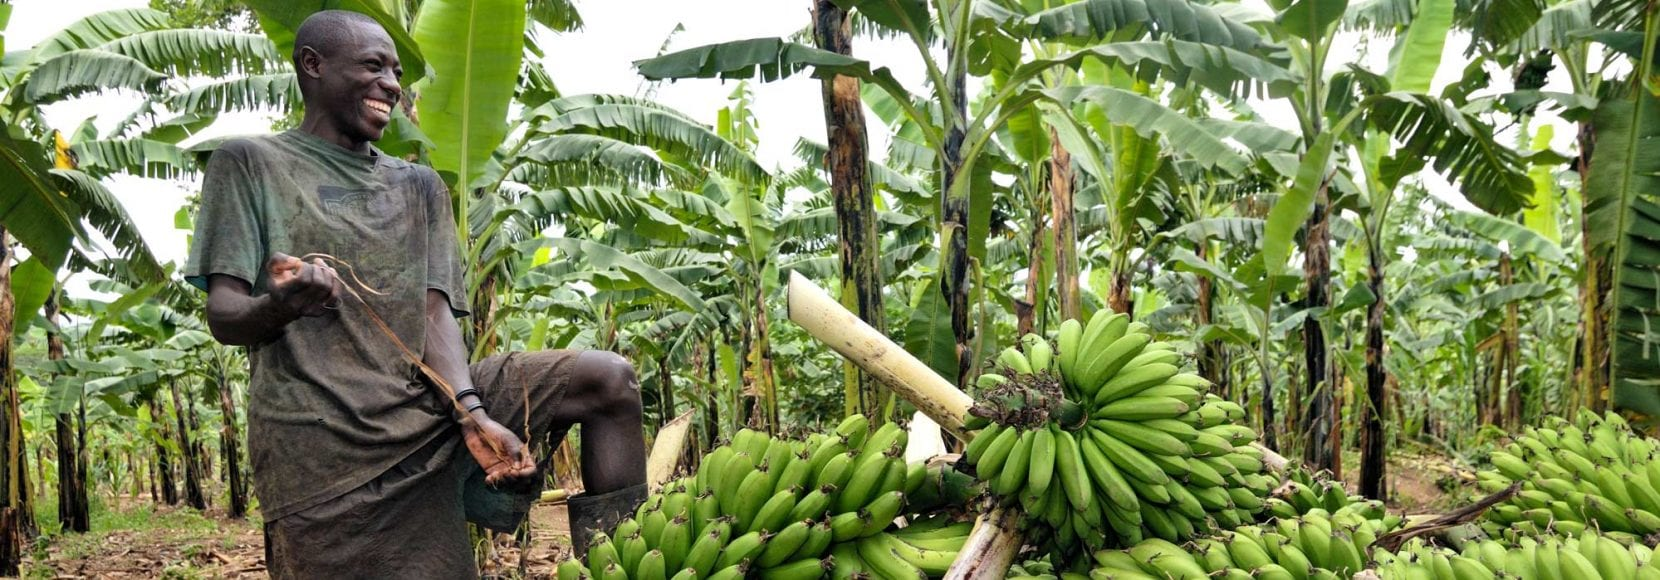 Farmer smiling with Bananas in Uganda